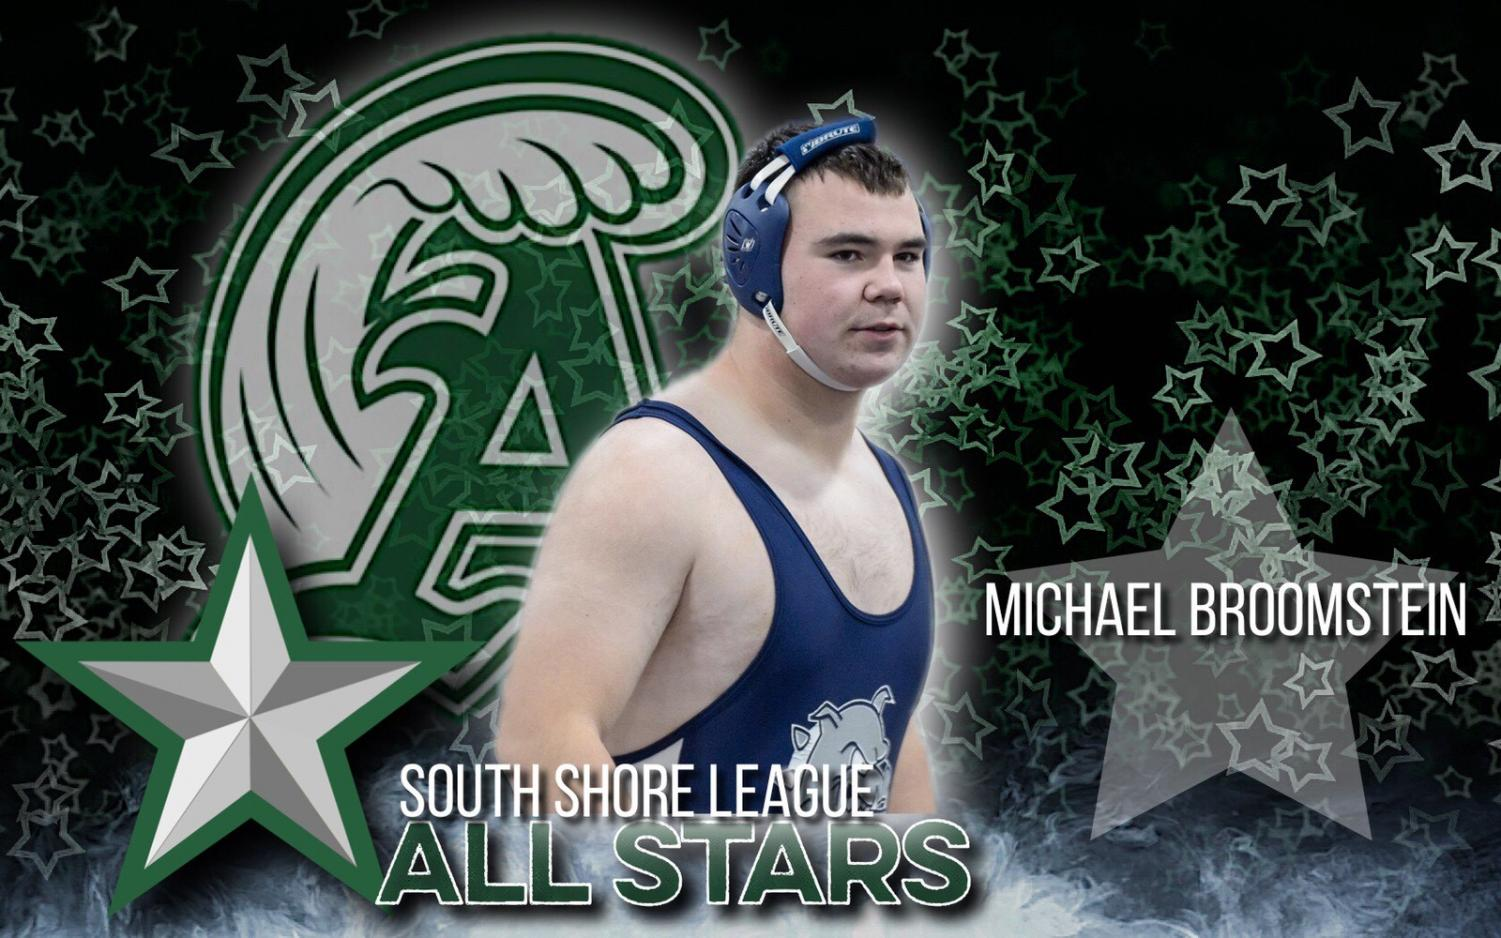 AHS Wrestling All Star, Mike Broomstein ('19)